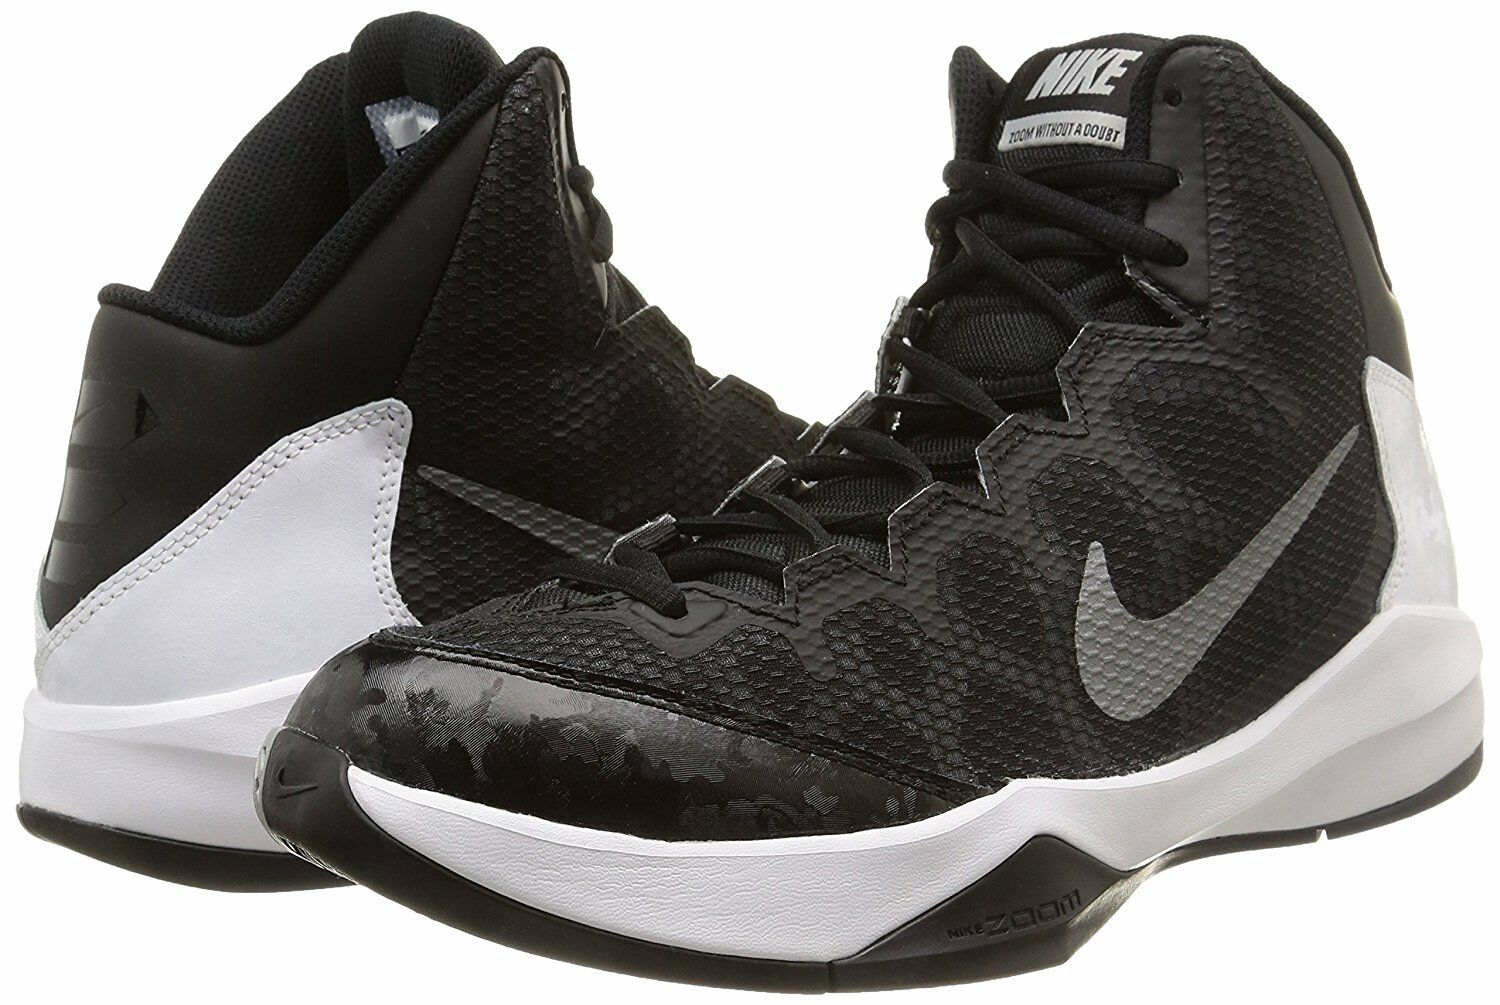 Men's Nike 002 Zoom Without a Doubt Basketball Shoes, 749432 002 Nike Sizes 8-12 Black/Si 822865